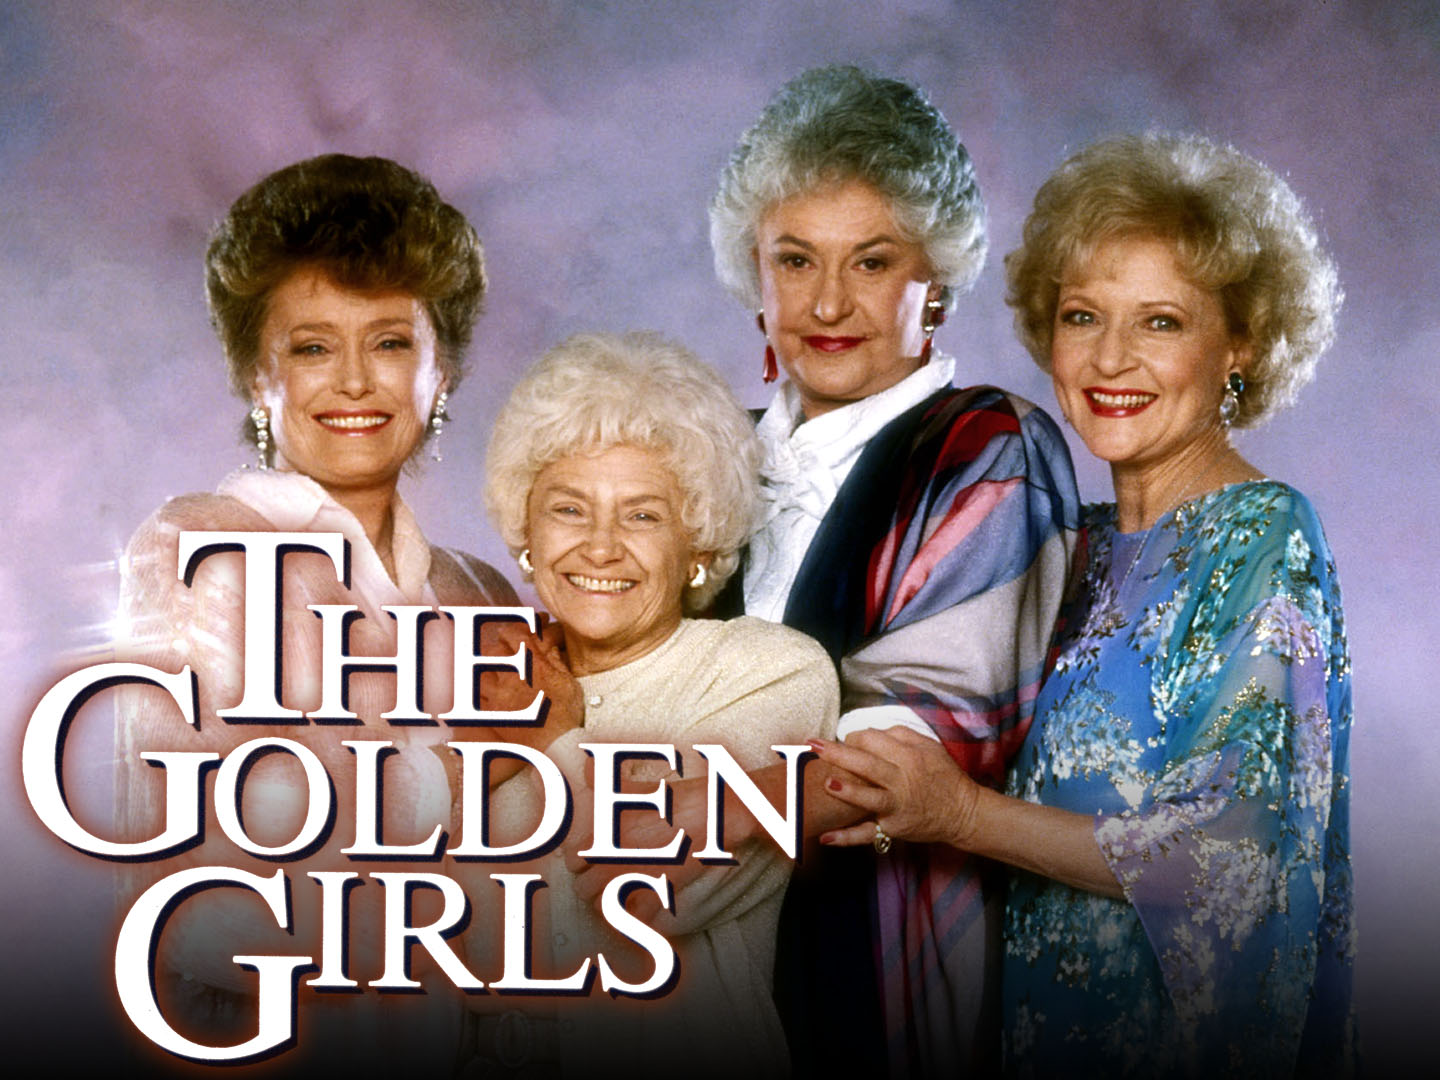 What Happens When Gospel Meets the Golden Girls? Amazing Things